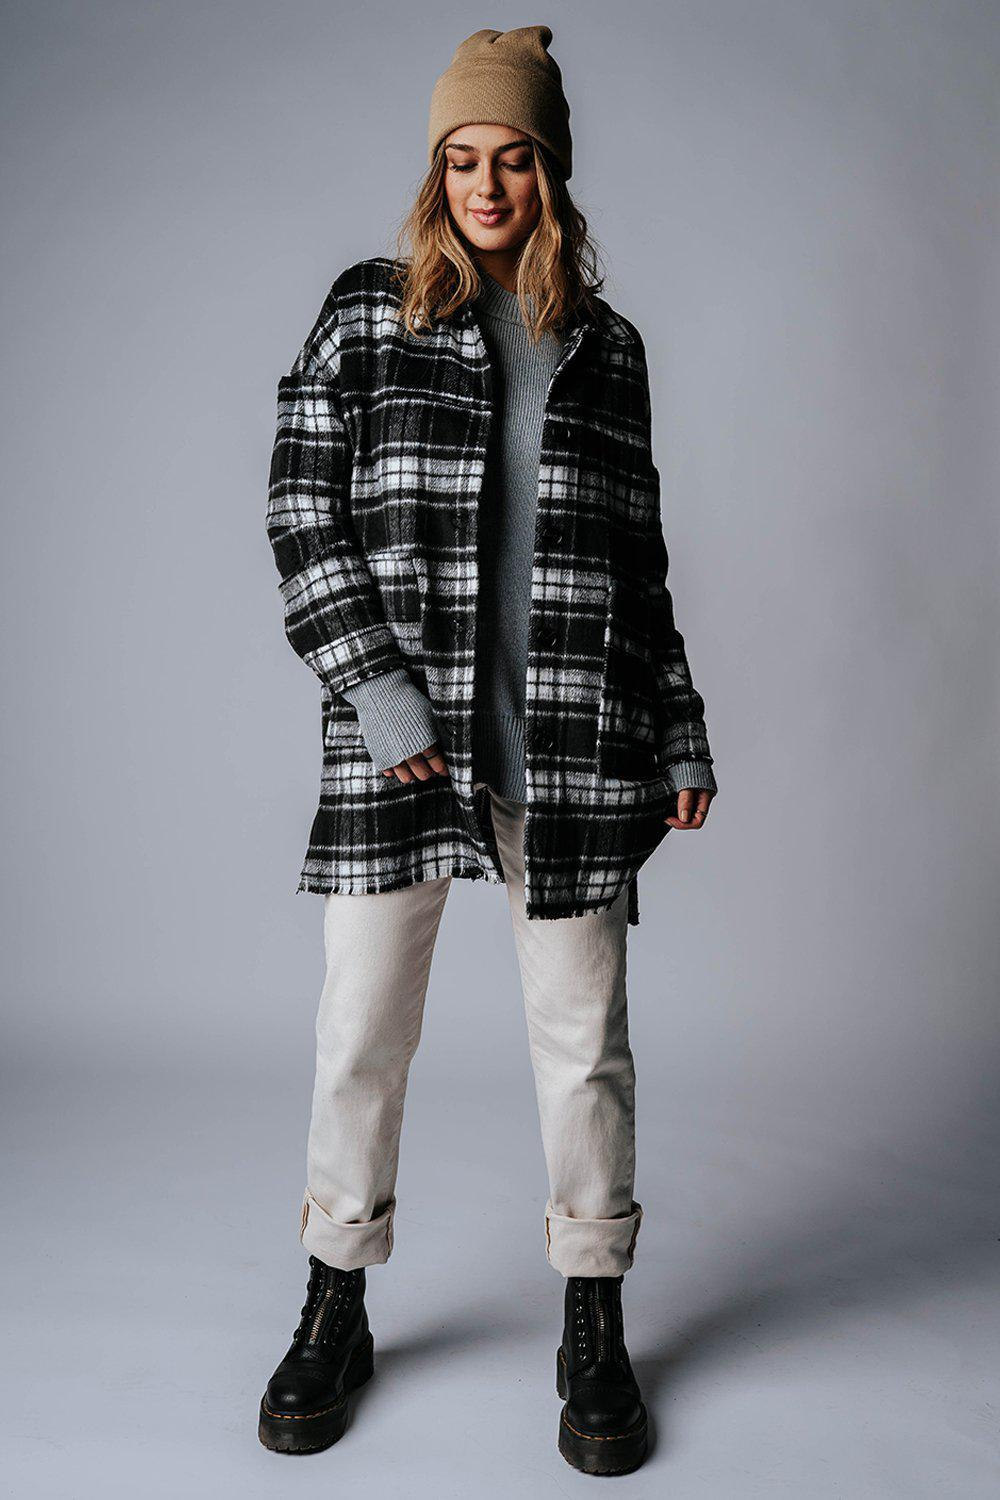 best_seller, In Early October Plaid Jacket, Top, women's clothing, dresses, skirts, coats, jackets, shoes, boots, tops, tee shirts, jeans, free people, levi's, rollas, jumpsuits, bottoms, tops, sweaters, pullovers, pants, shorts, sweats,.